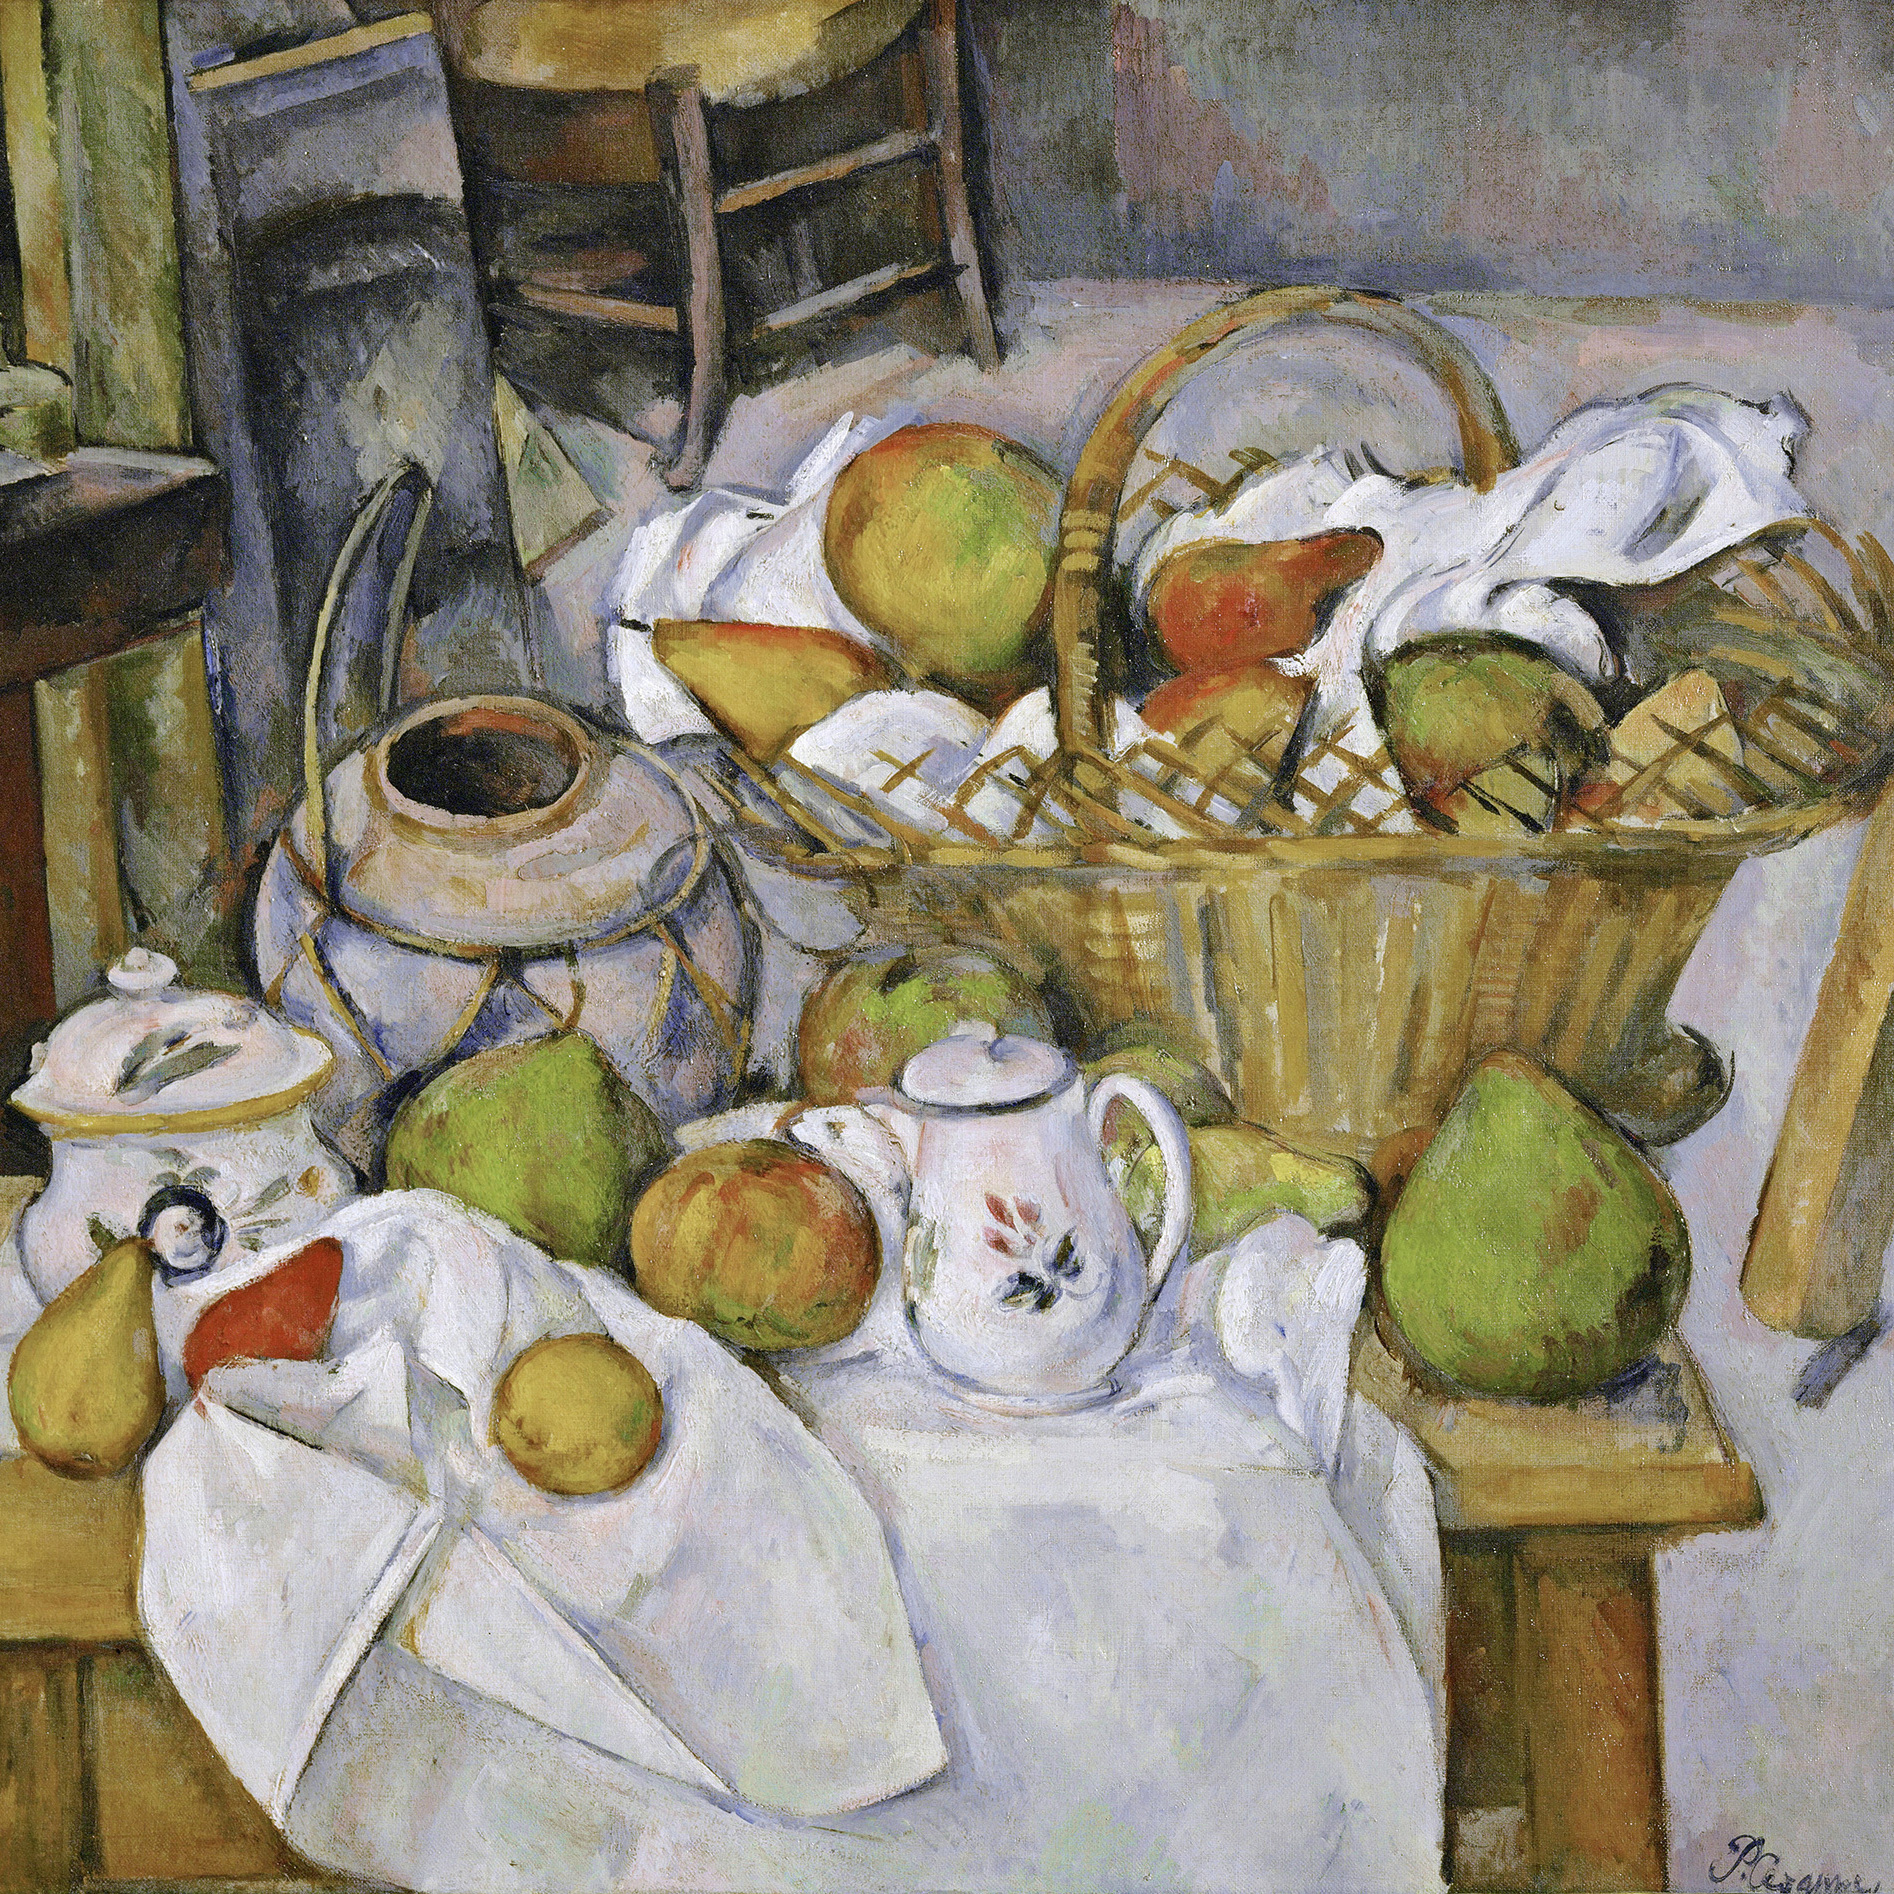 The Kitchen Table (La table de cuisine) by Paul Cezanne, 1888-18��90.